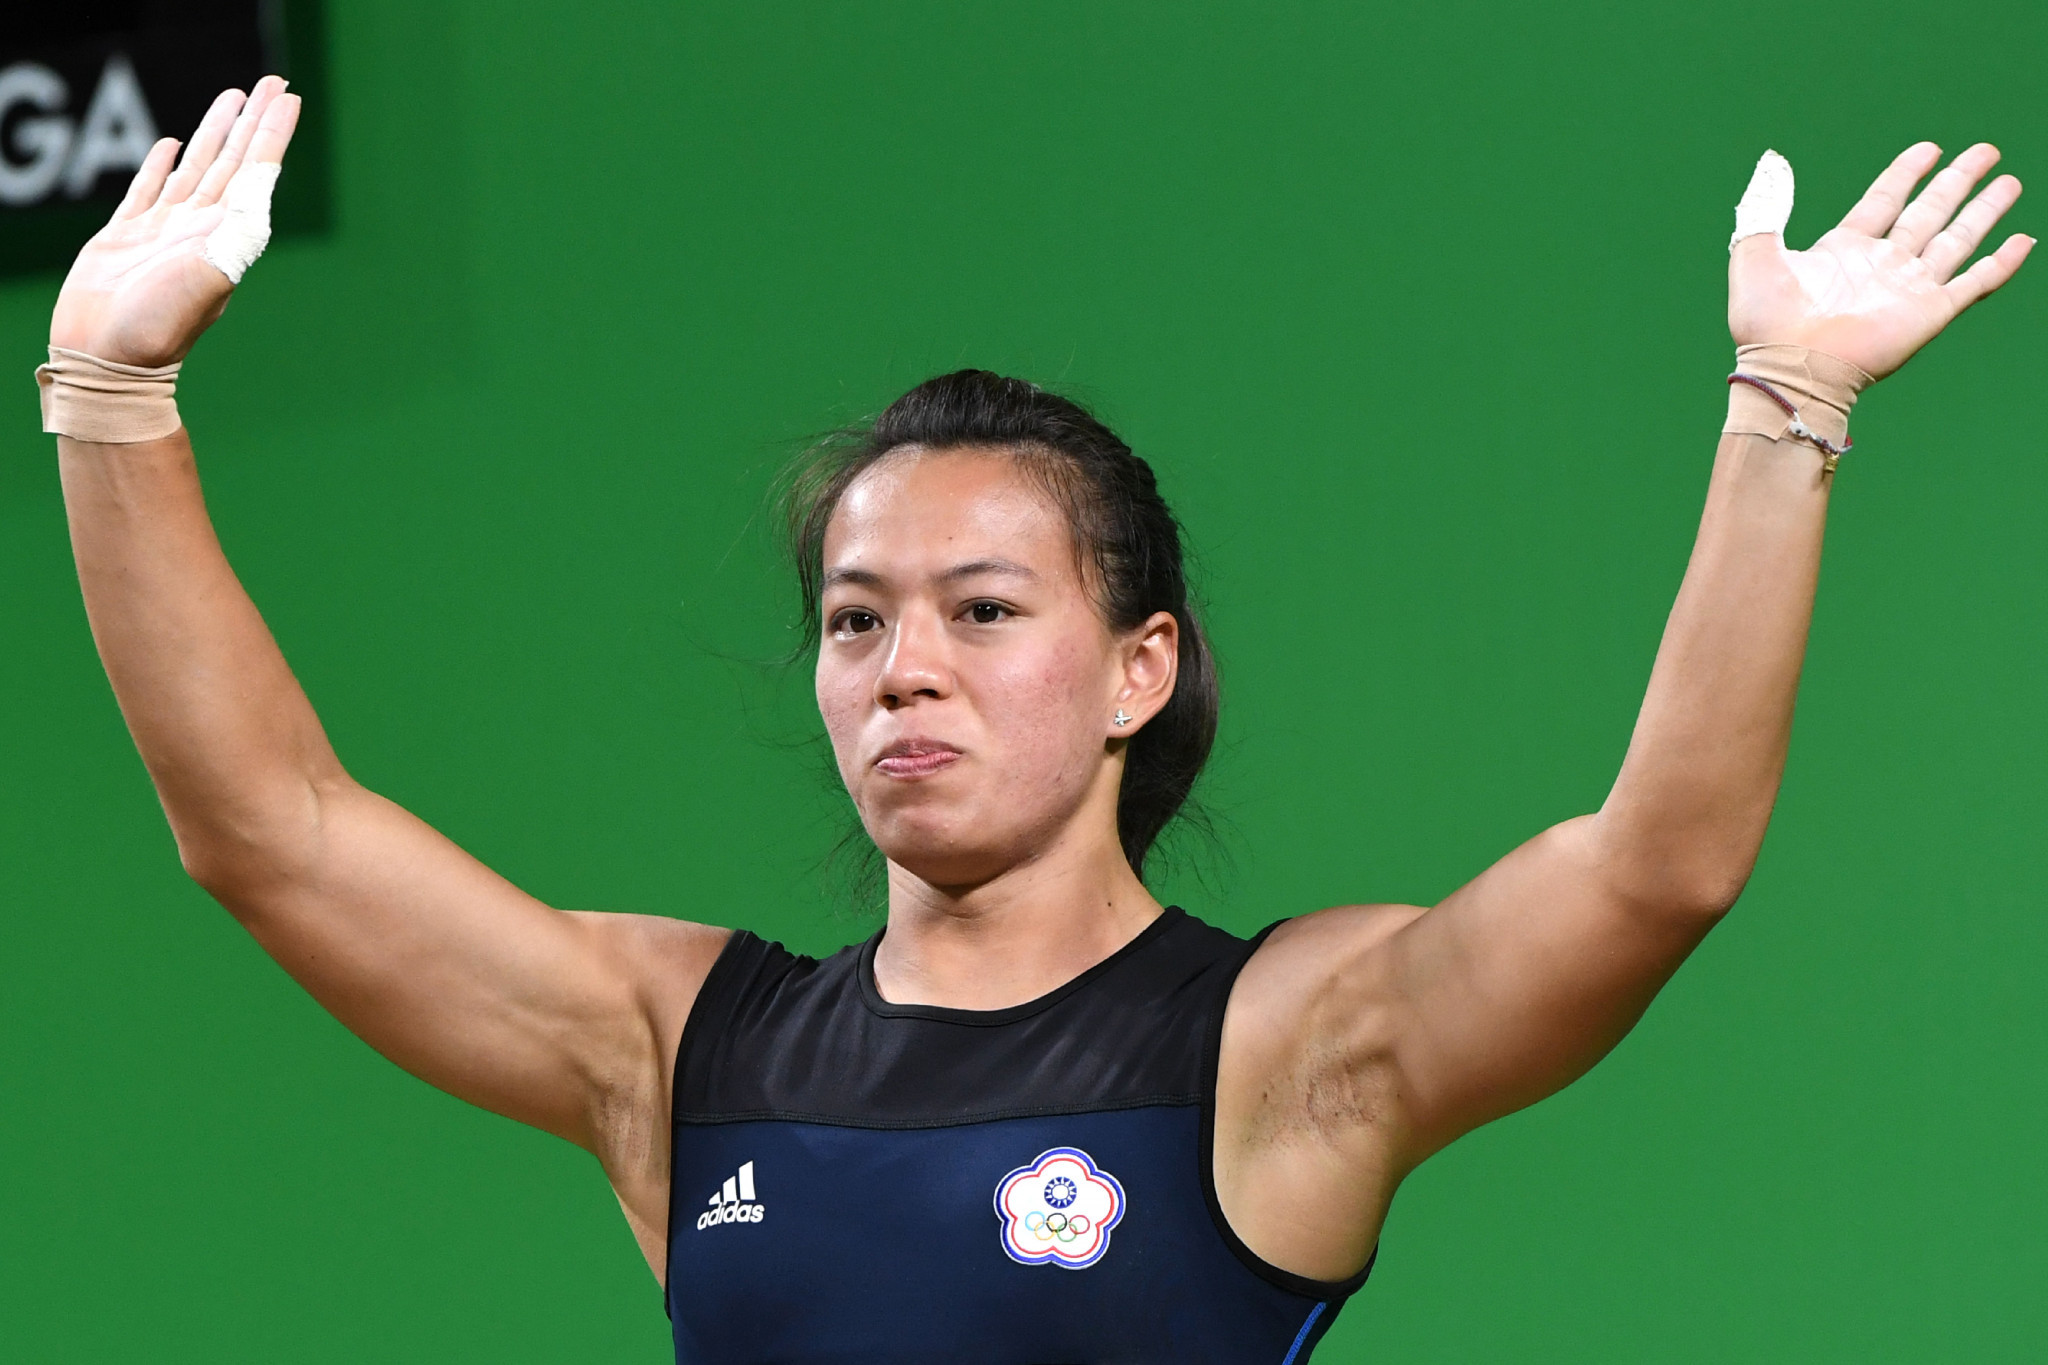 Kuo Hsing-Chun broke two world records at the Asian Weightlifting Championships ©Getty Images